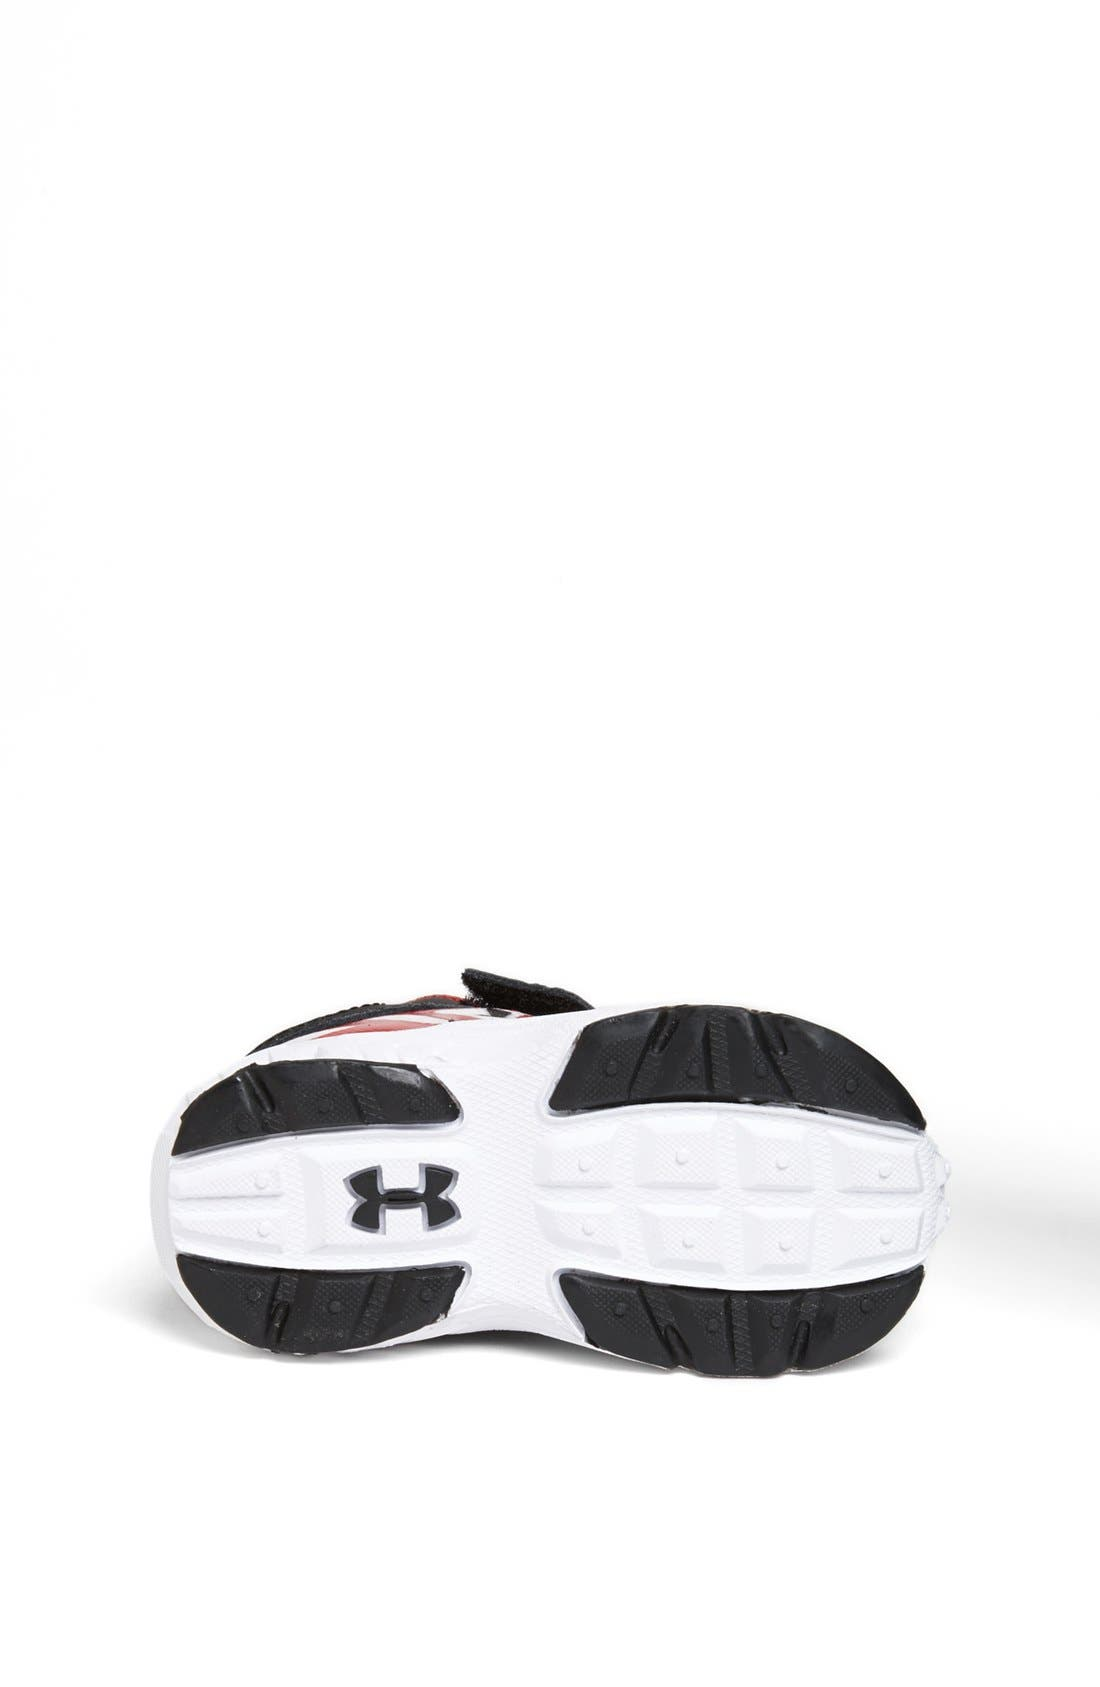 Alternate Image 4  - Under Armour 'Ignite' Sneaker (Baby, Walker & Toddler)